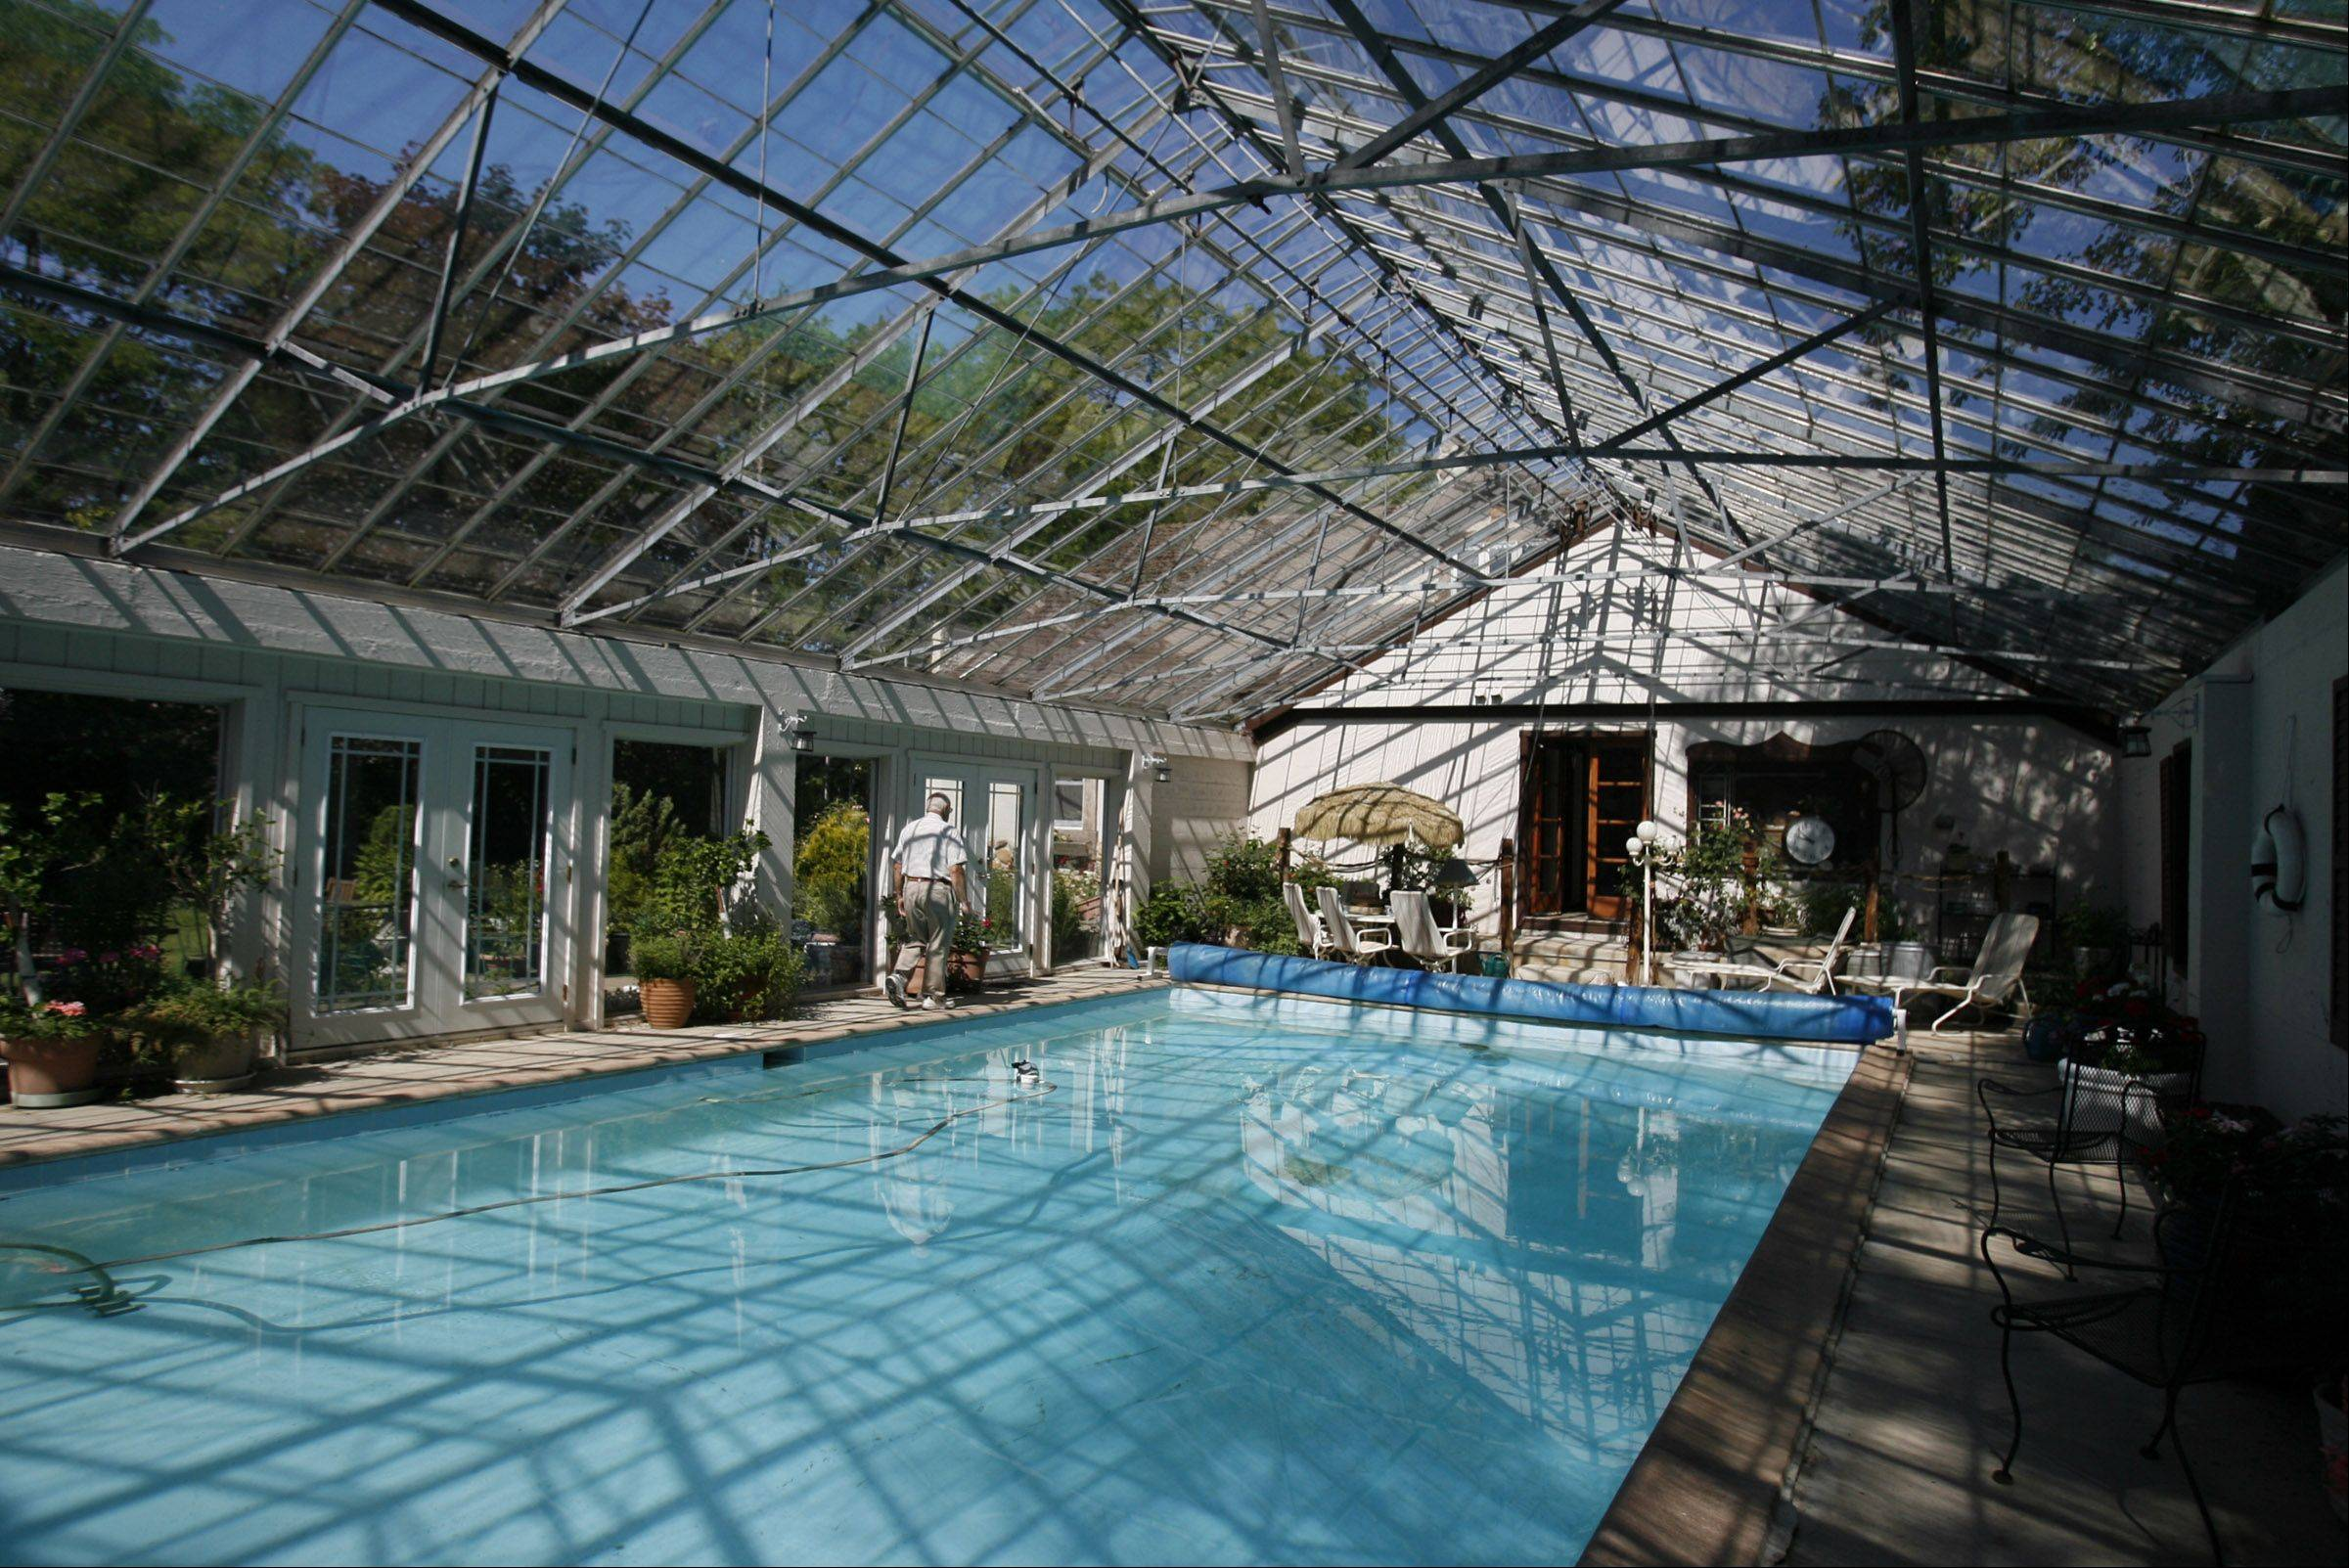 The swimming pool under a glass roof where some of the panes open is spectacular.